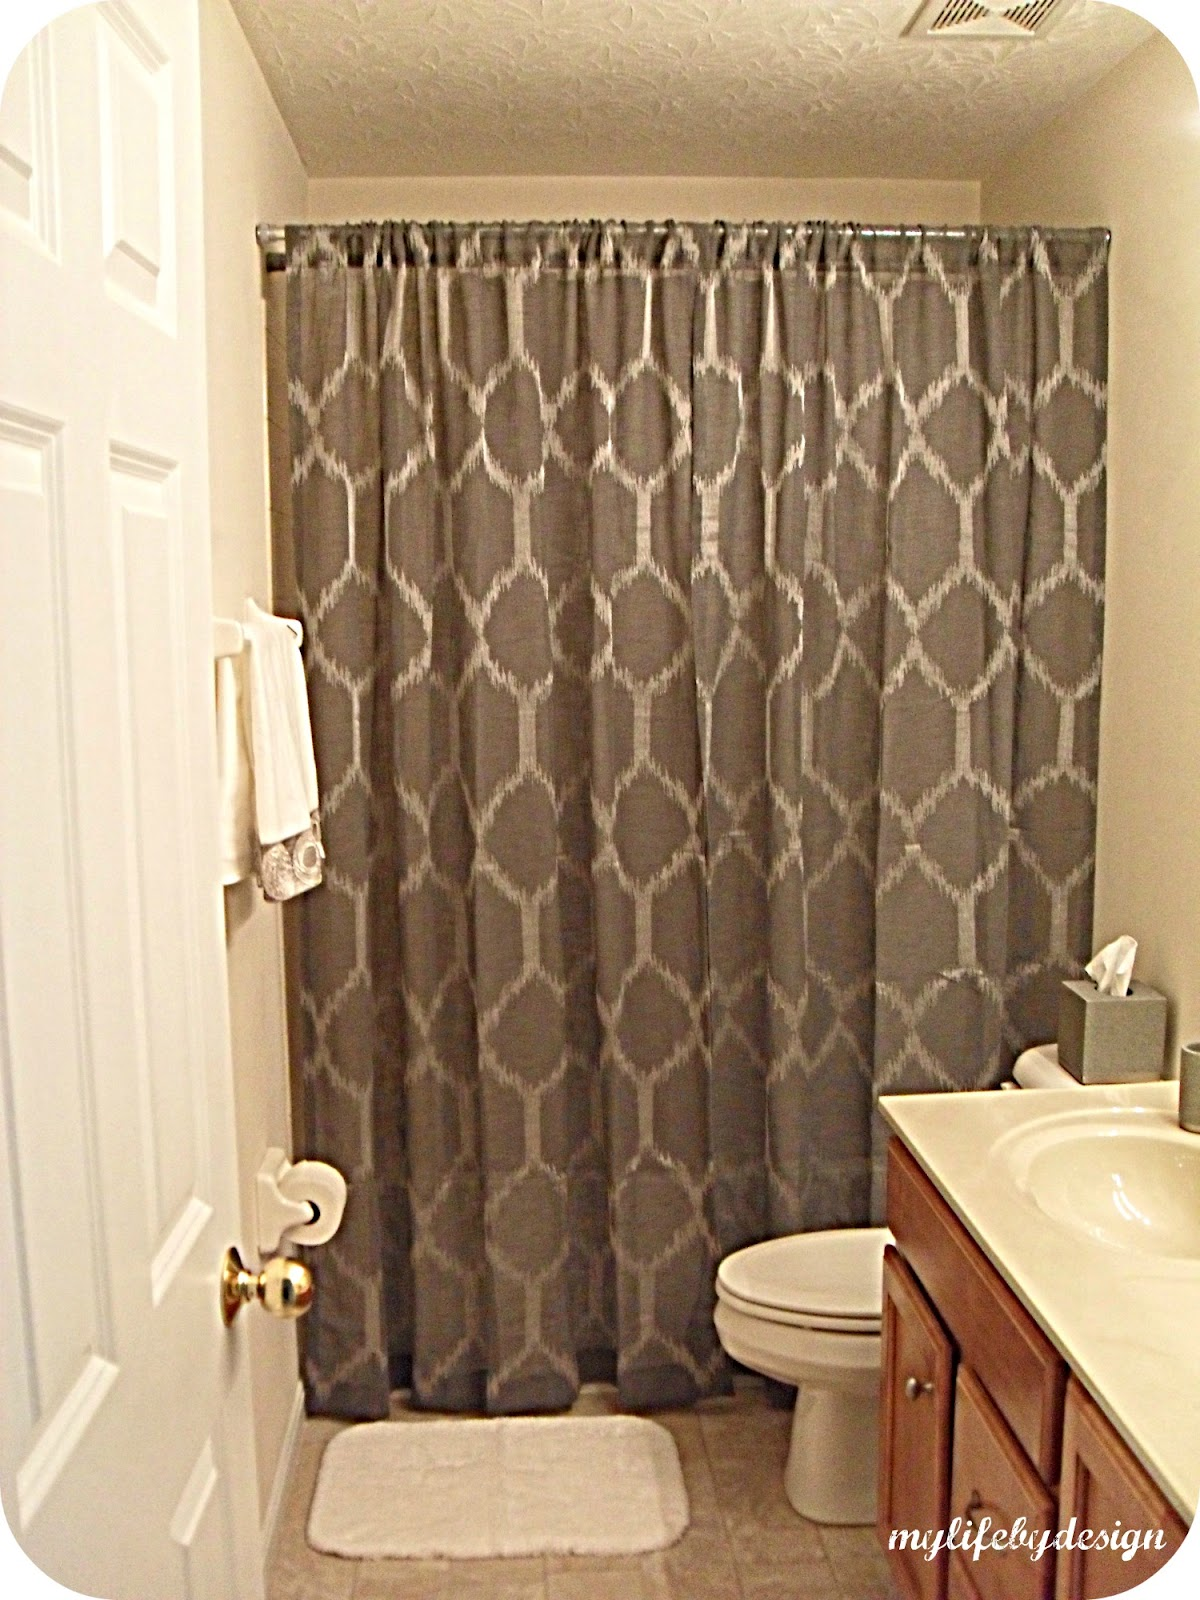 How To Make Shower Curtain Shower Curtain Ideas